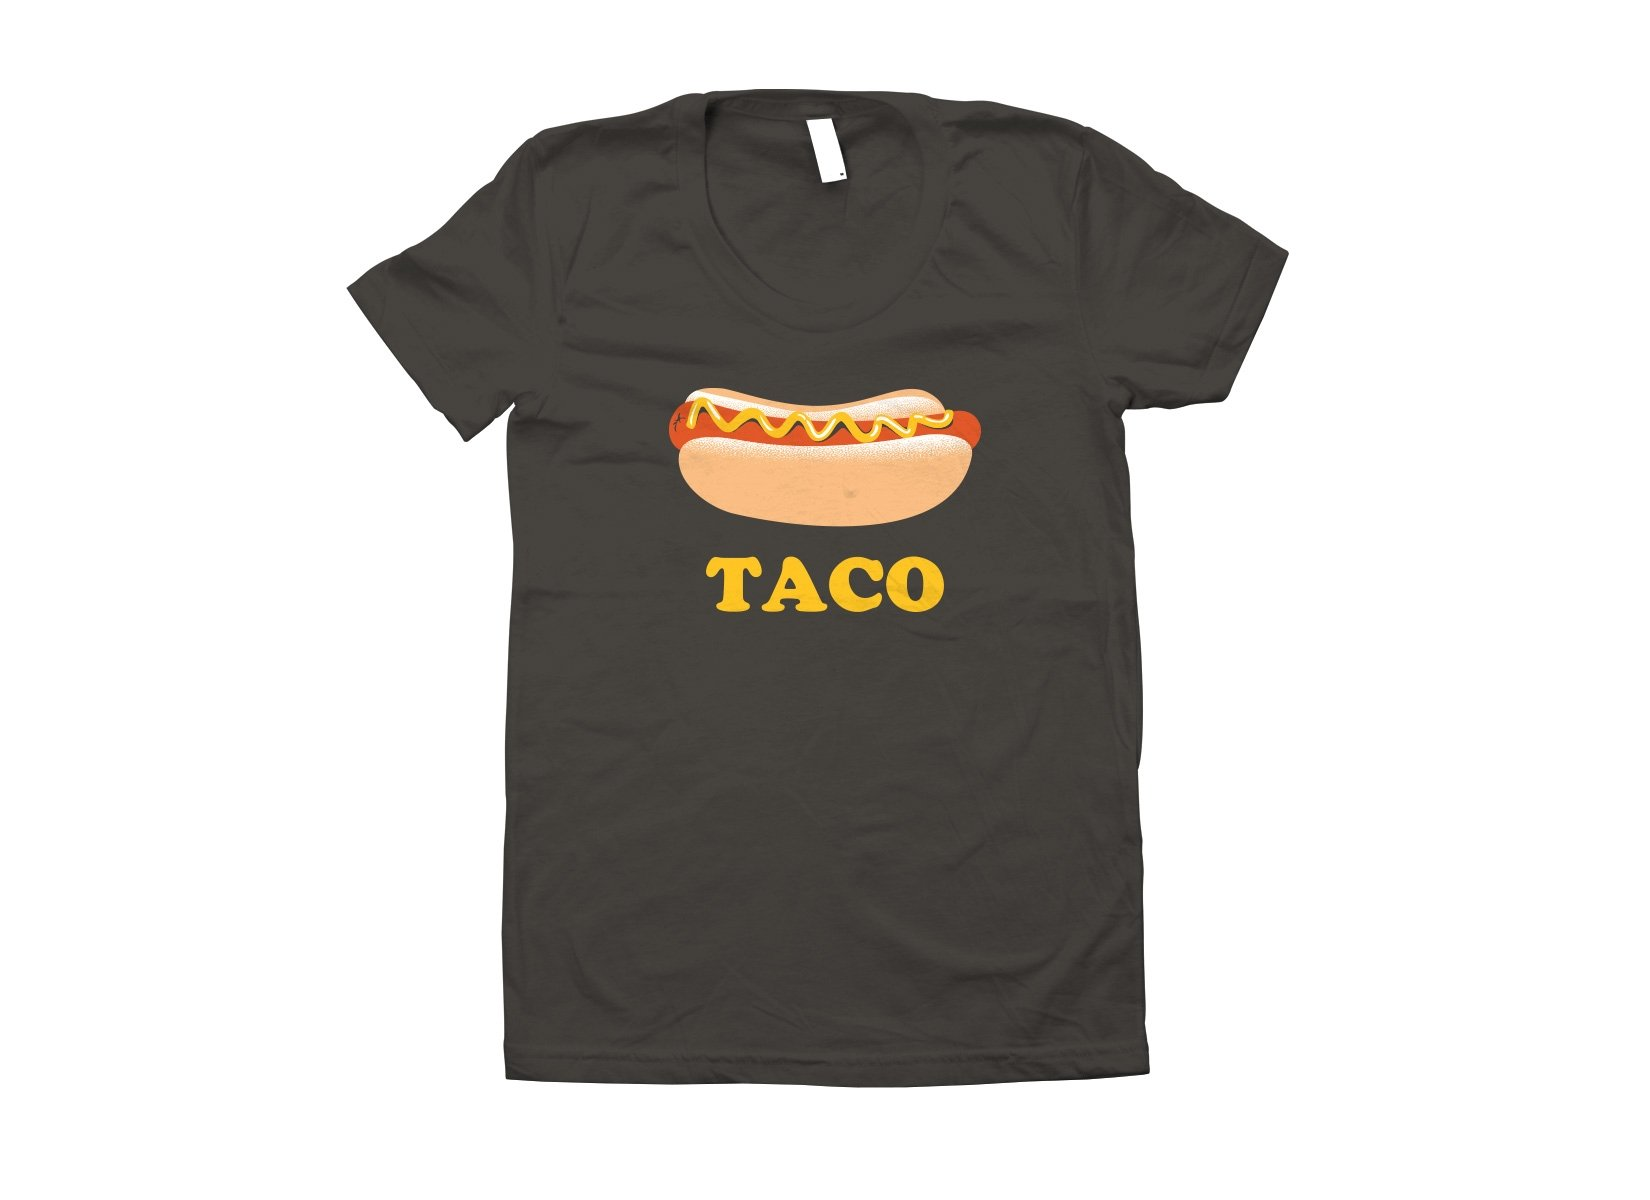 Hotdog Taco on Juniors T-Shirt